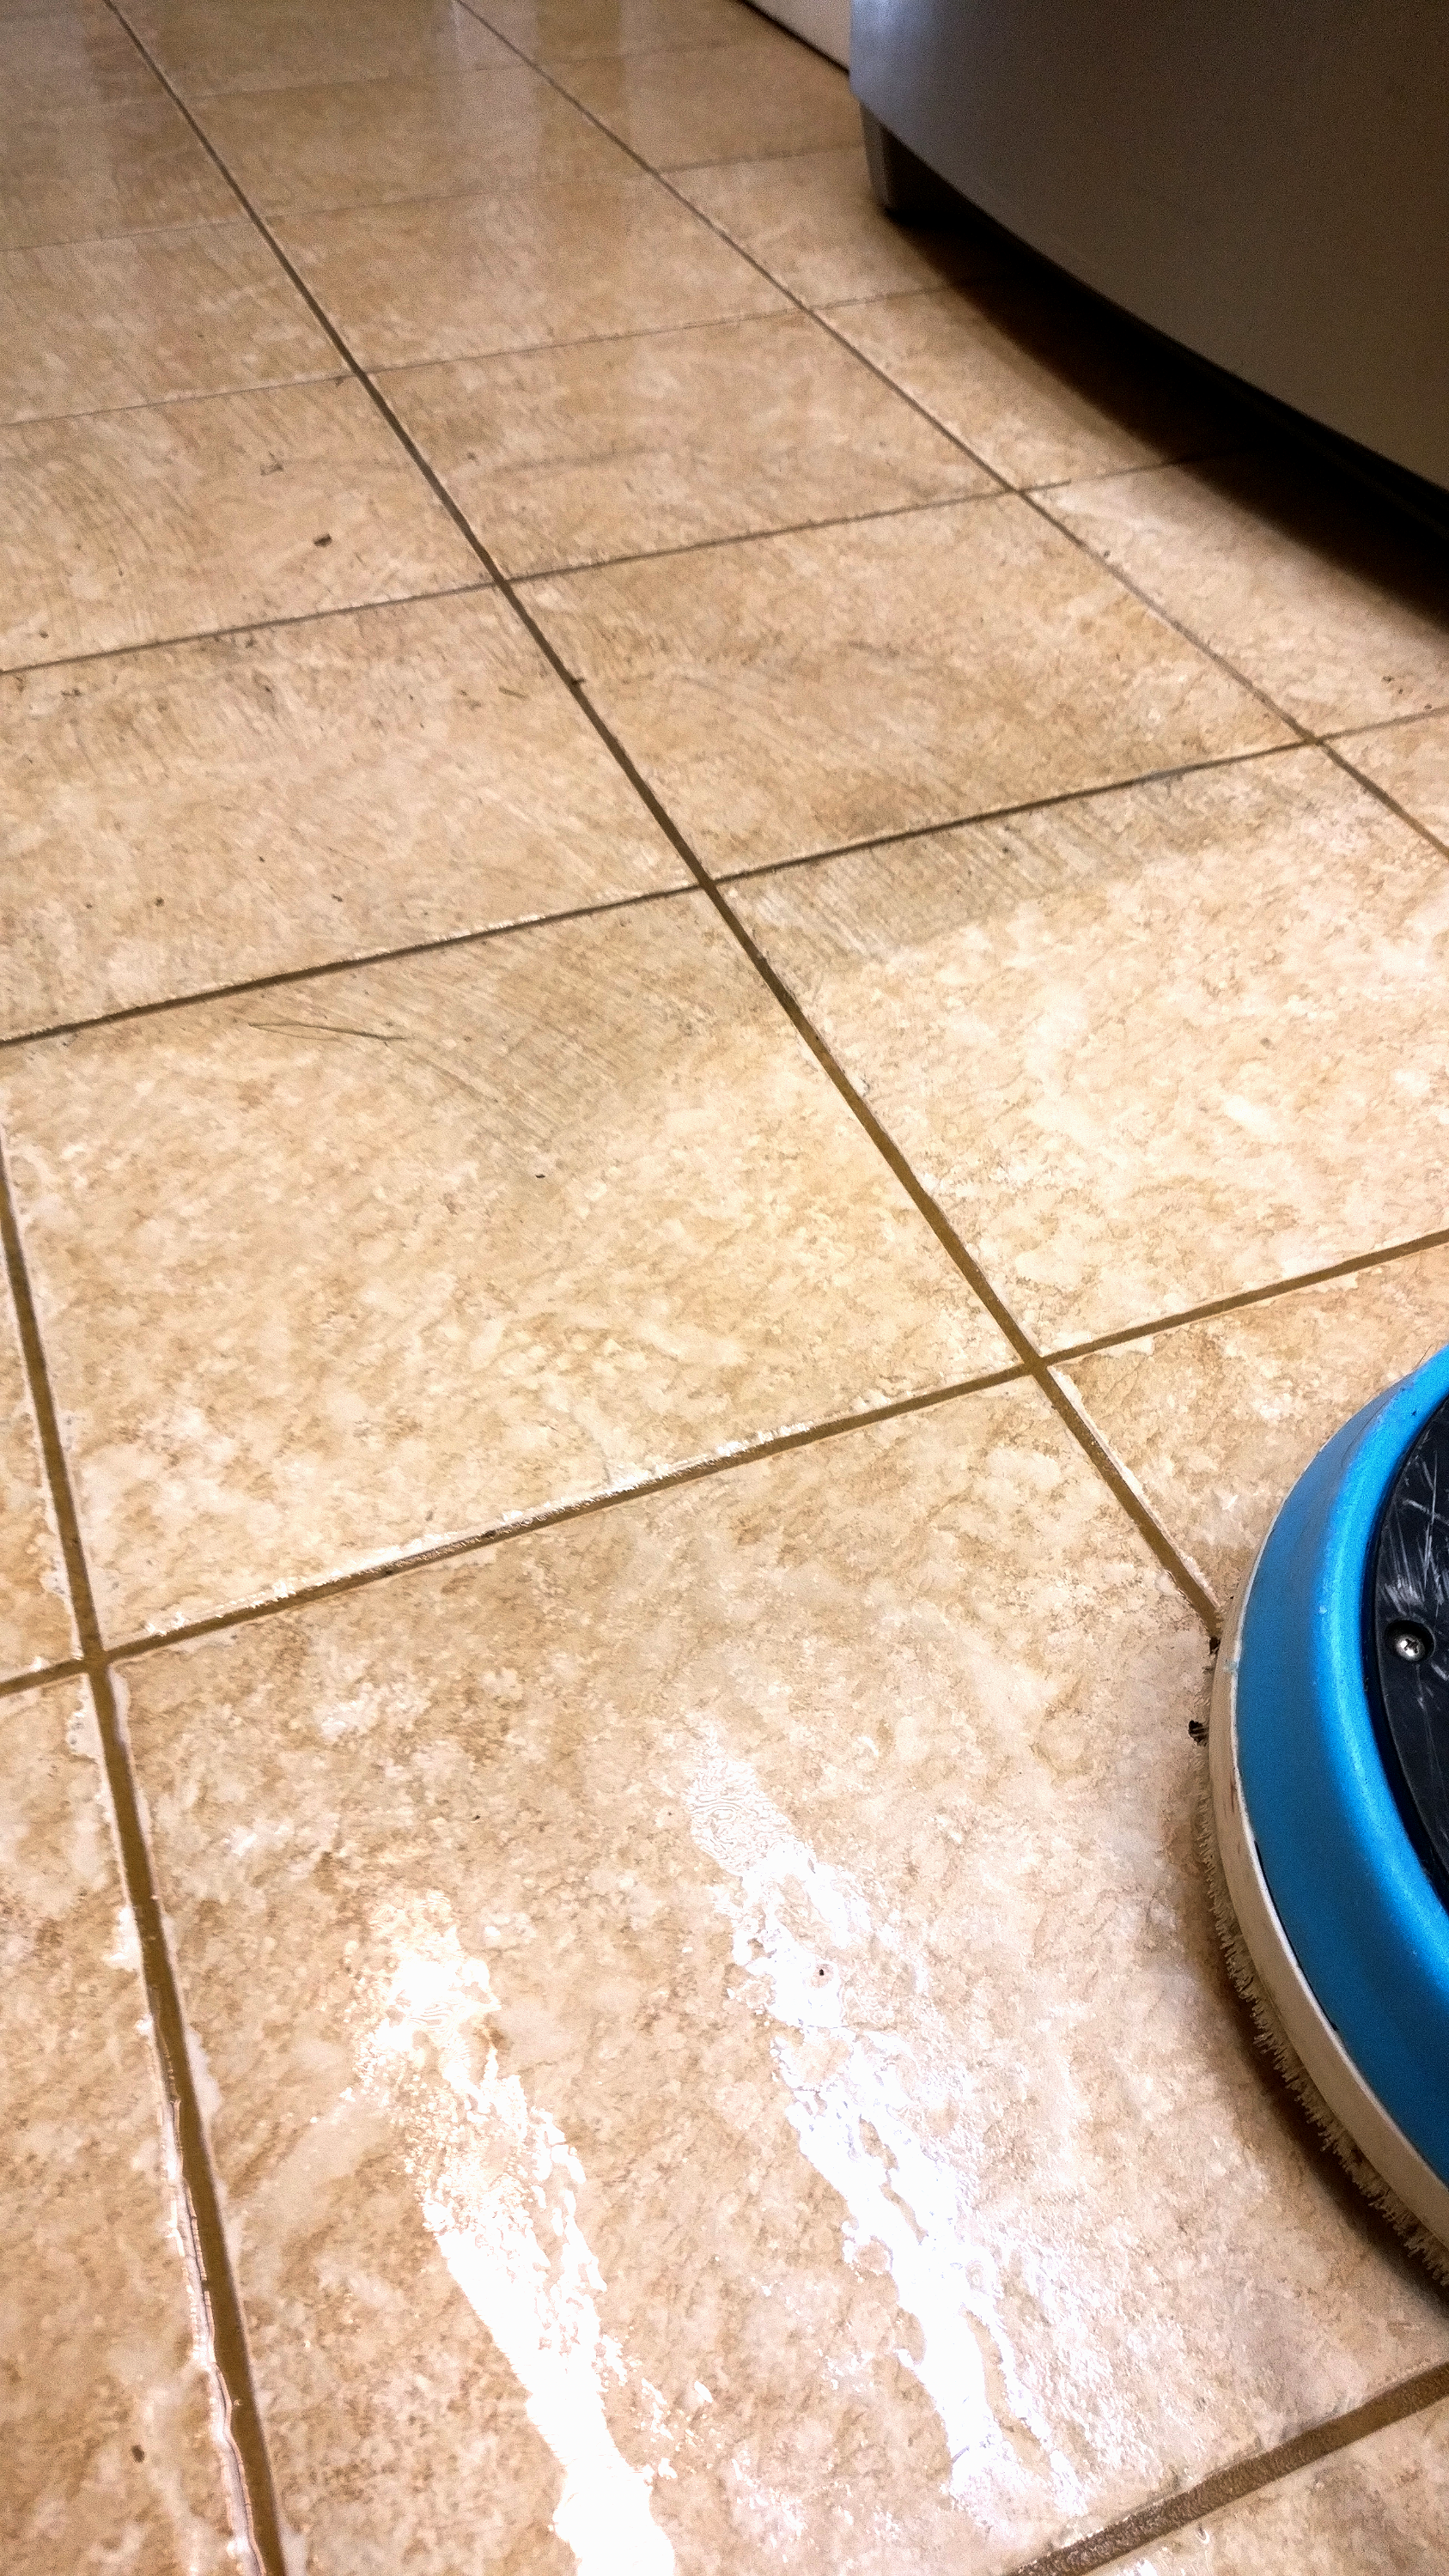 tile hasn't been cleaned in 15 years